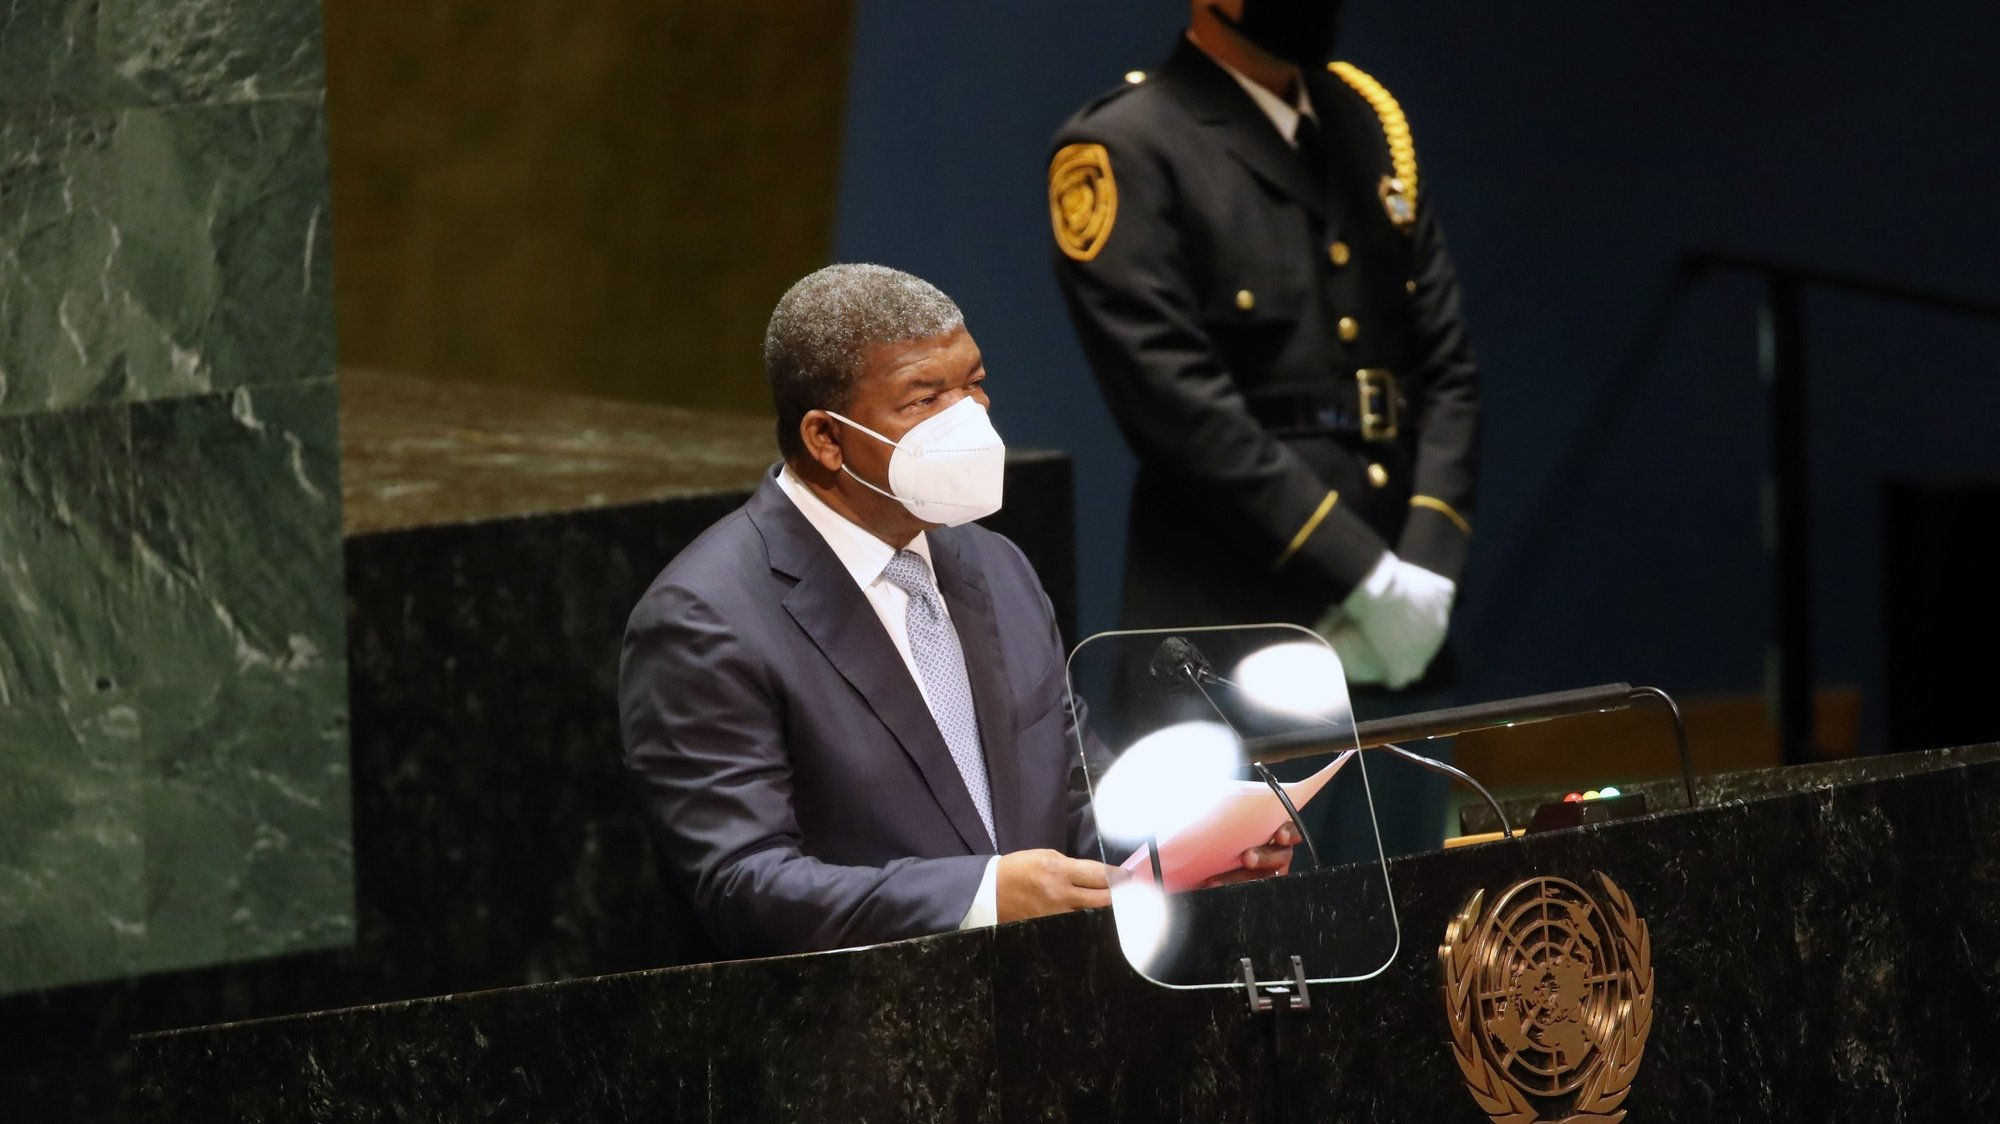 epa09483390 President of Angola Joao Lourenco speaks during the 76th Session of the General Assembly at UN Headquarters in New York City, New York, USA, 23 September 2021.  EPA/SPENCER PLATT / POOL